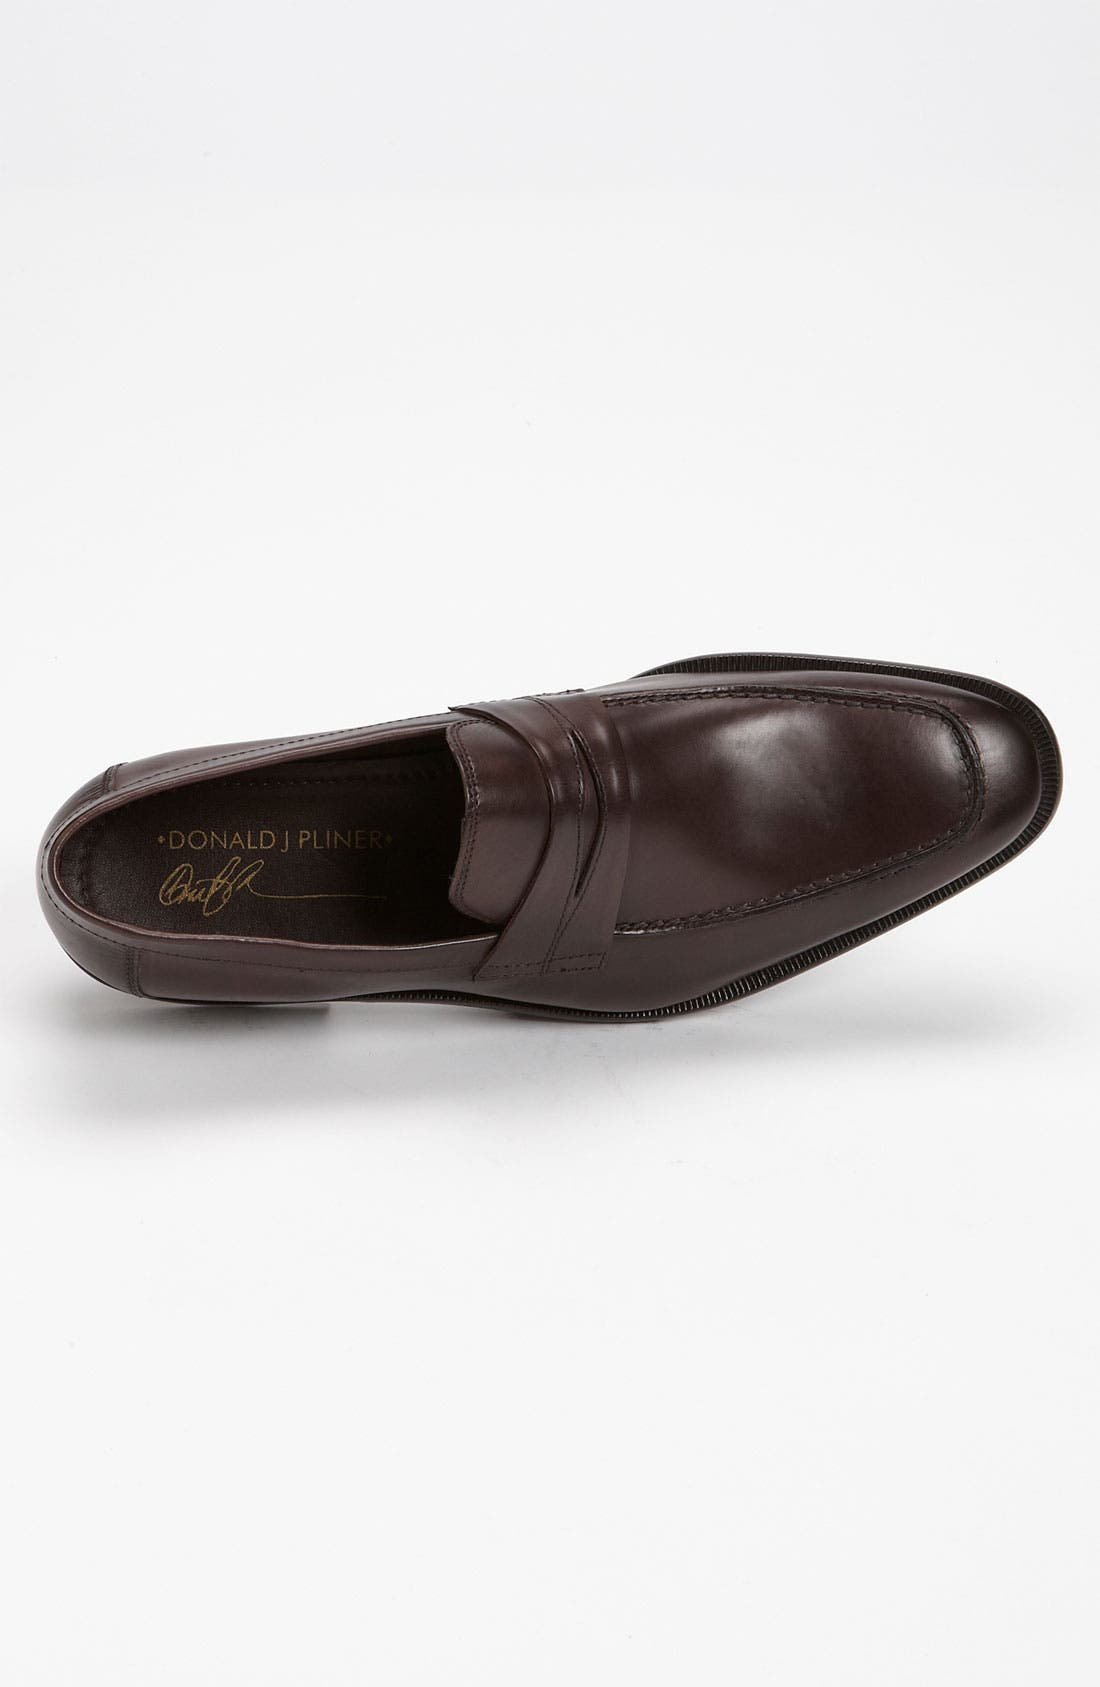 Alternate Image 3  - Donald J Pliner 'Gair' Loafer